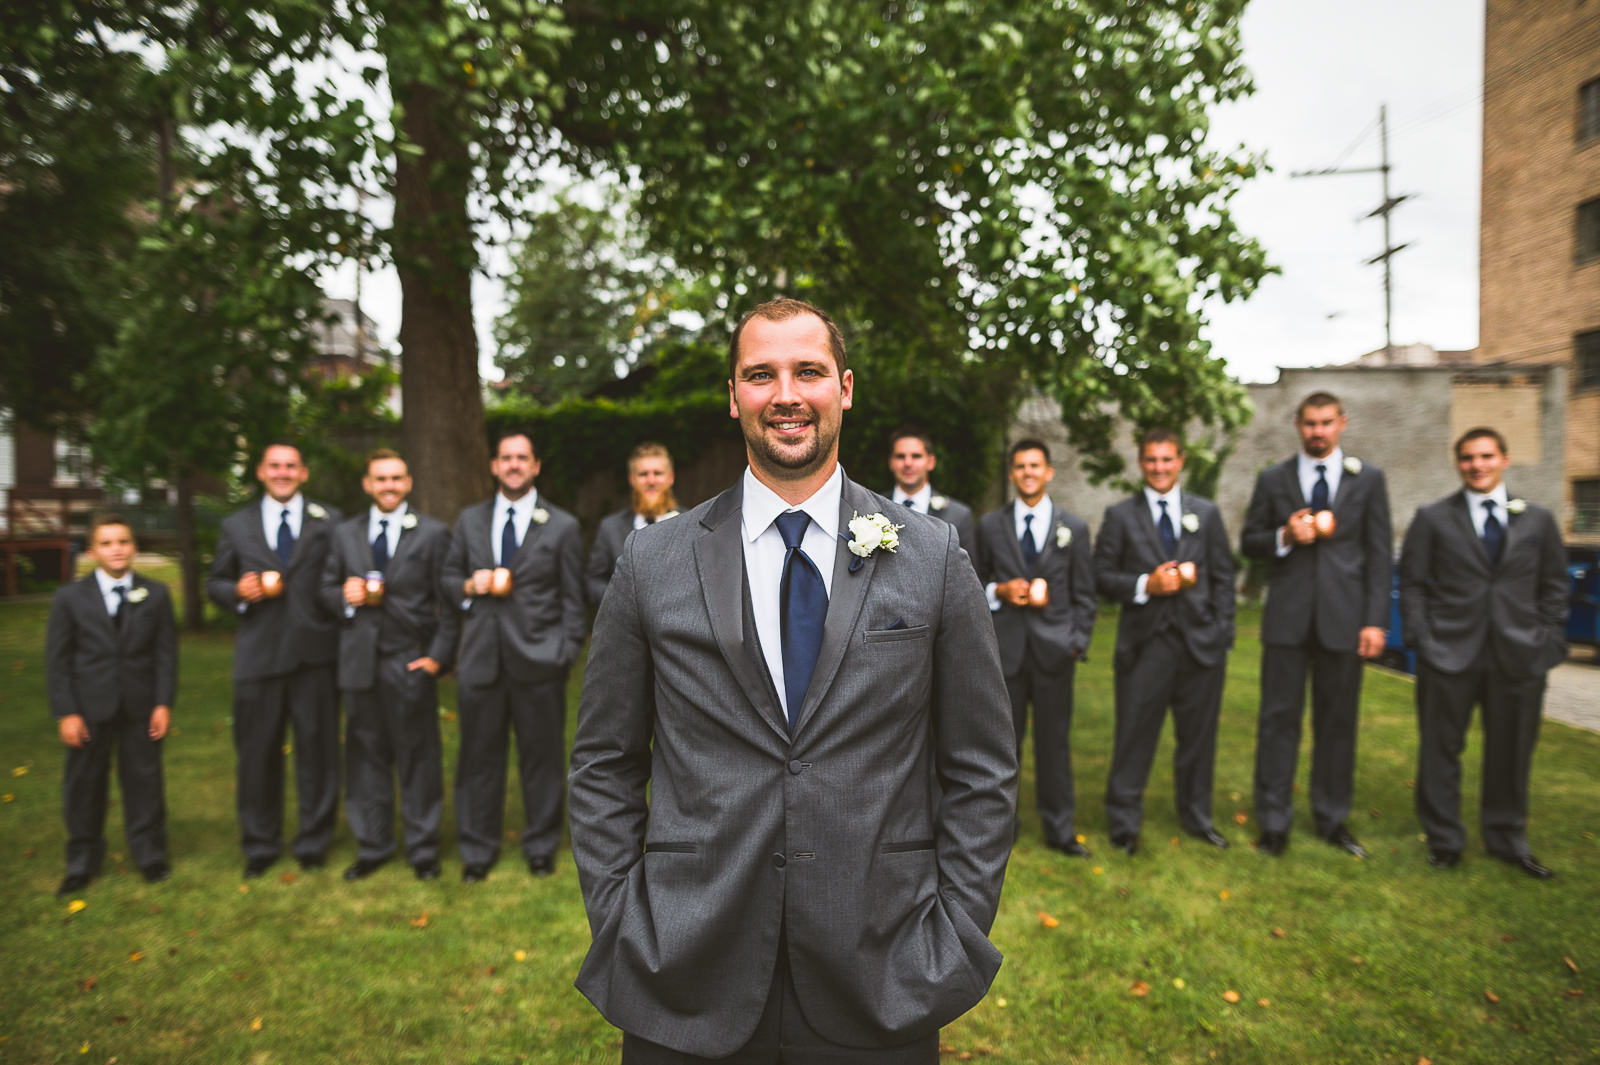 42 great groomsmen photos